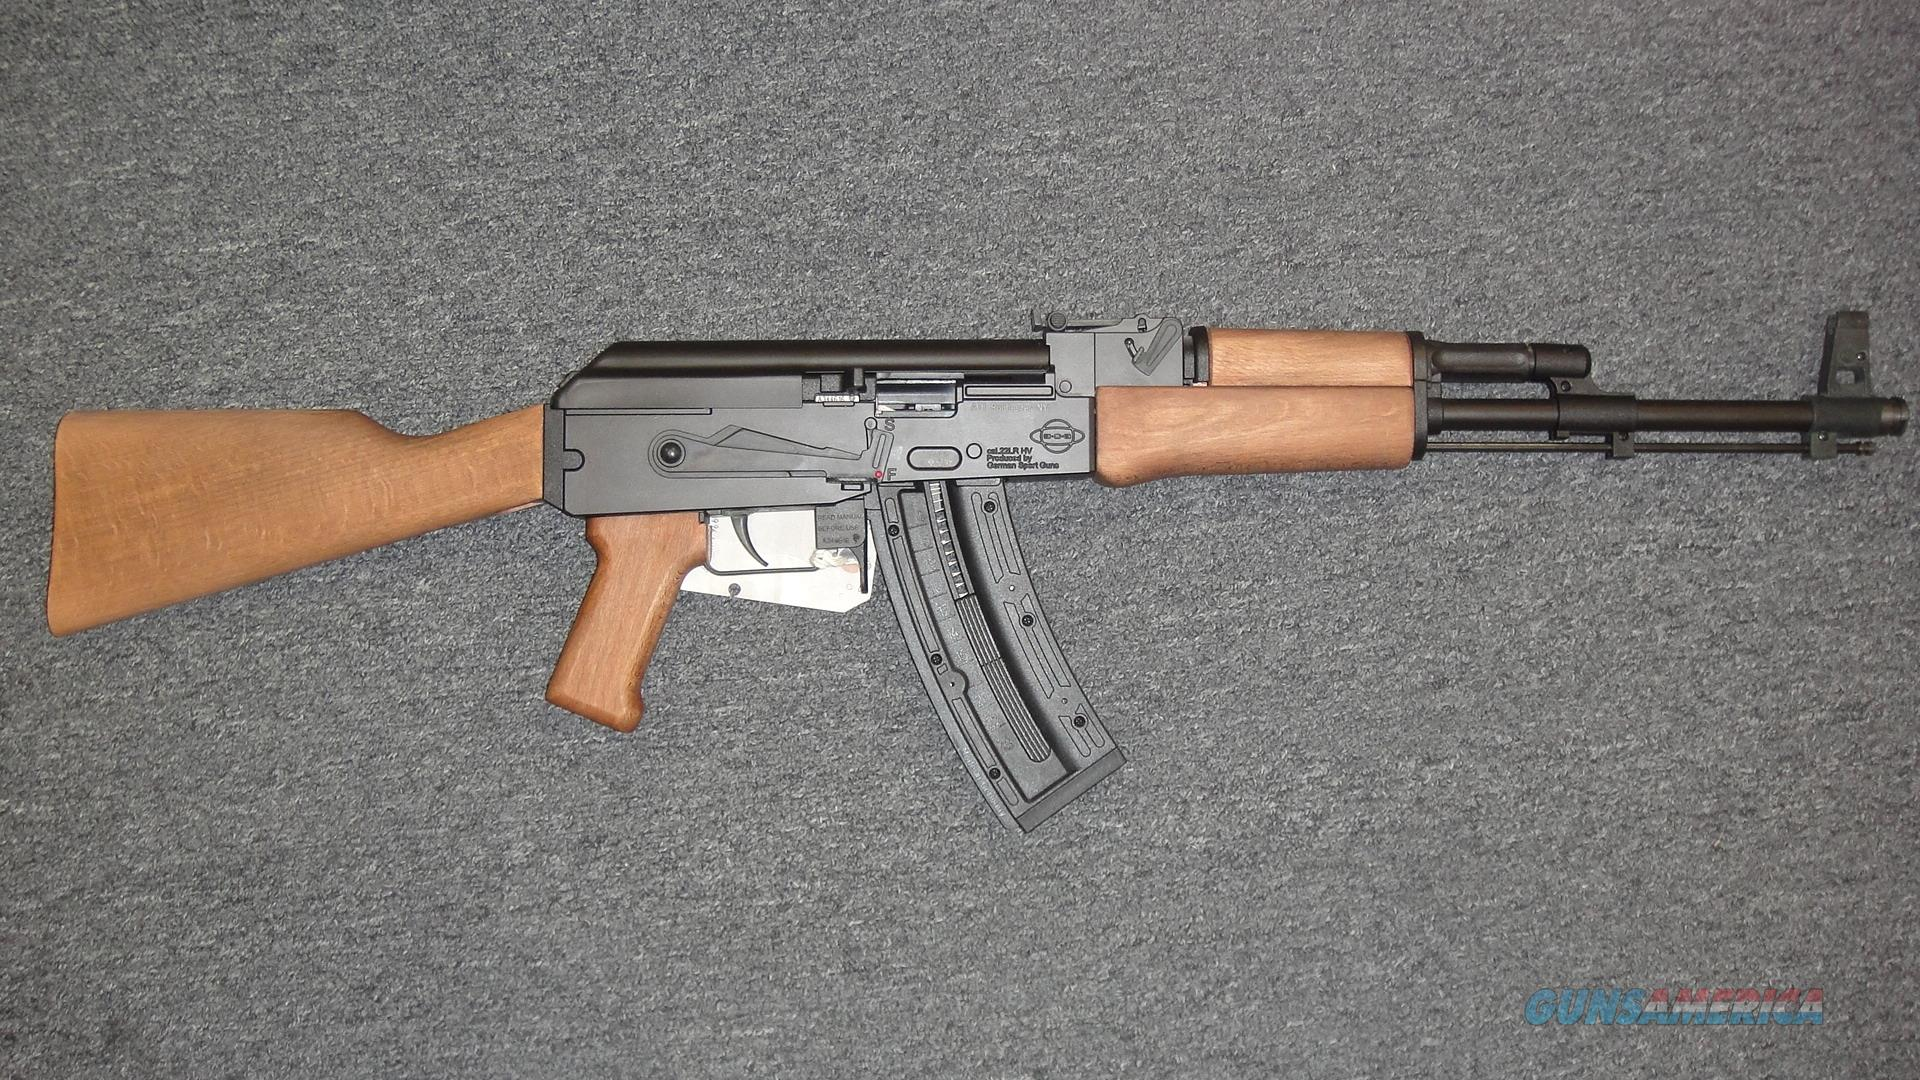 ATI/GSG AK-47 .22LR  Guns > Rifles > American Tactical Imports Rifles